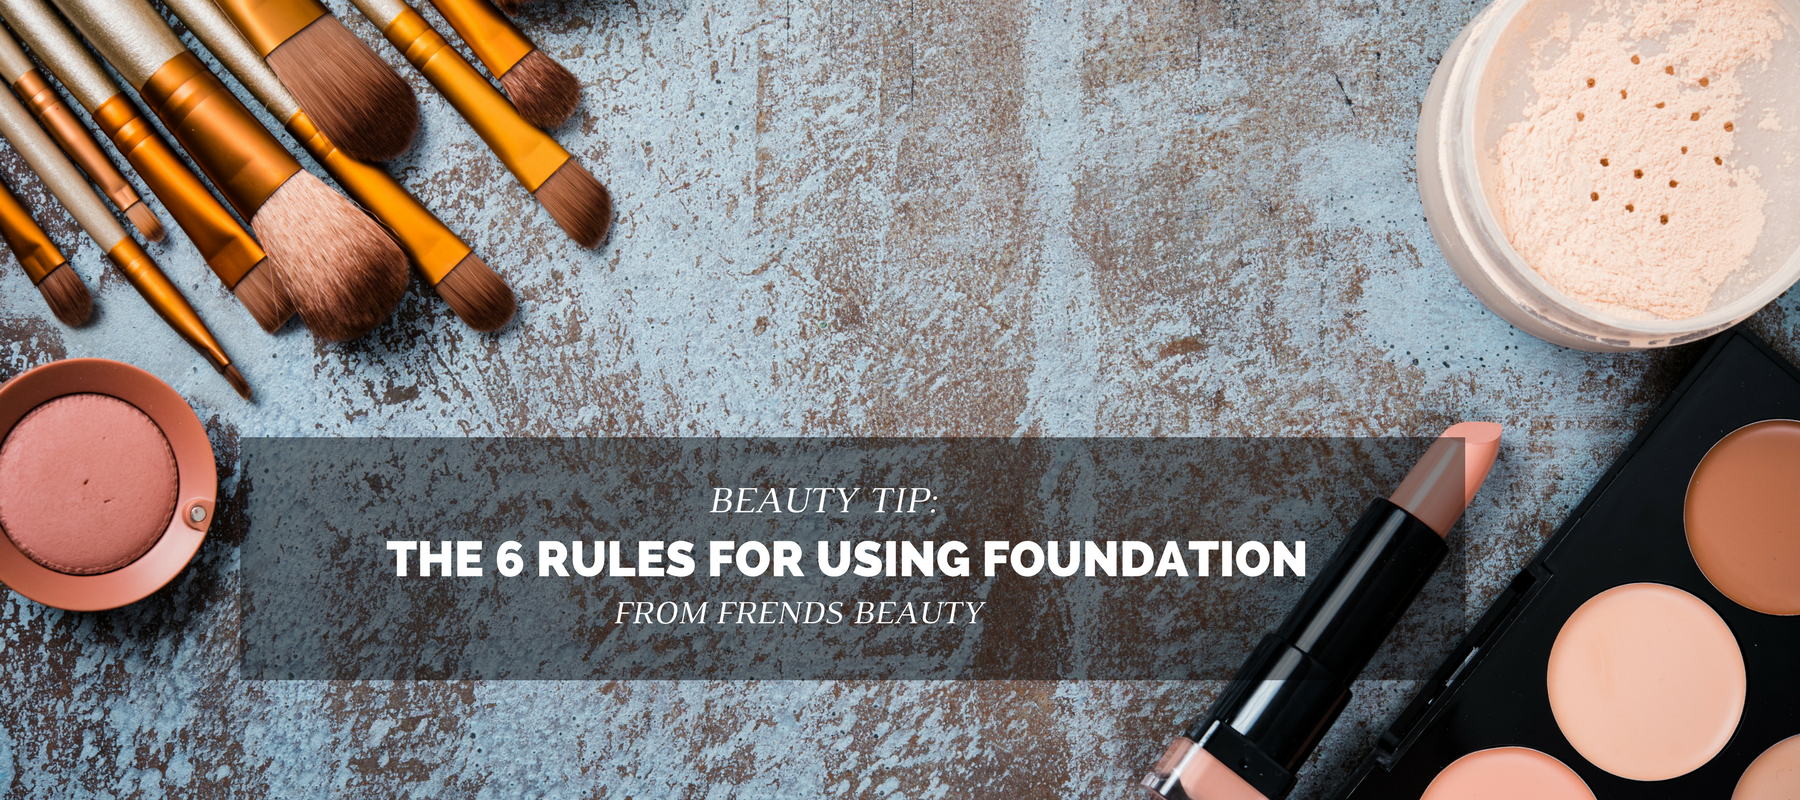 Foundation rules